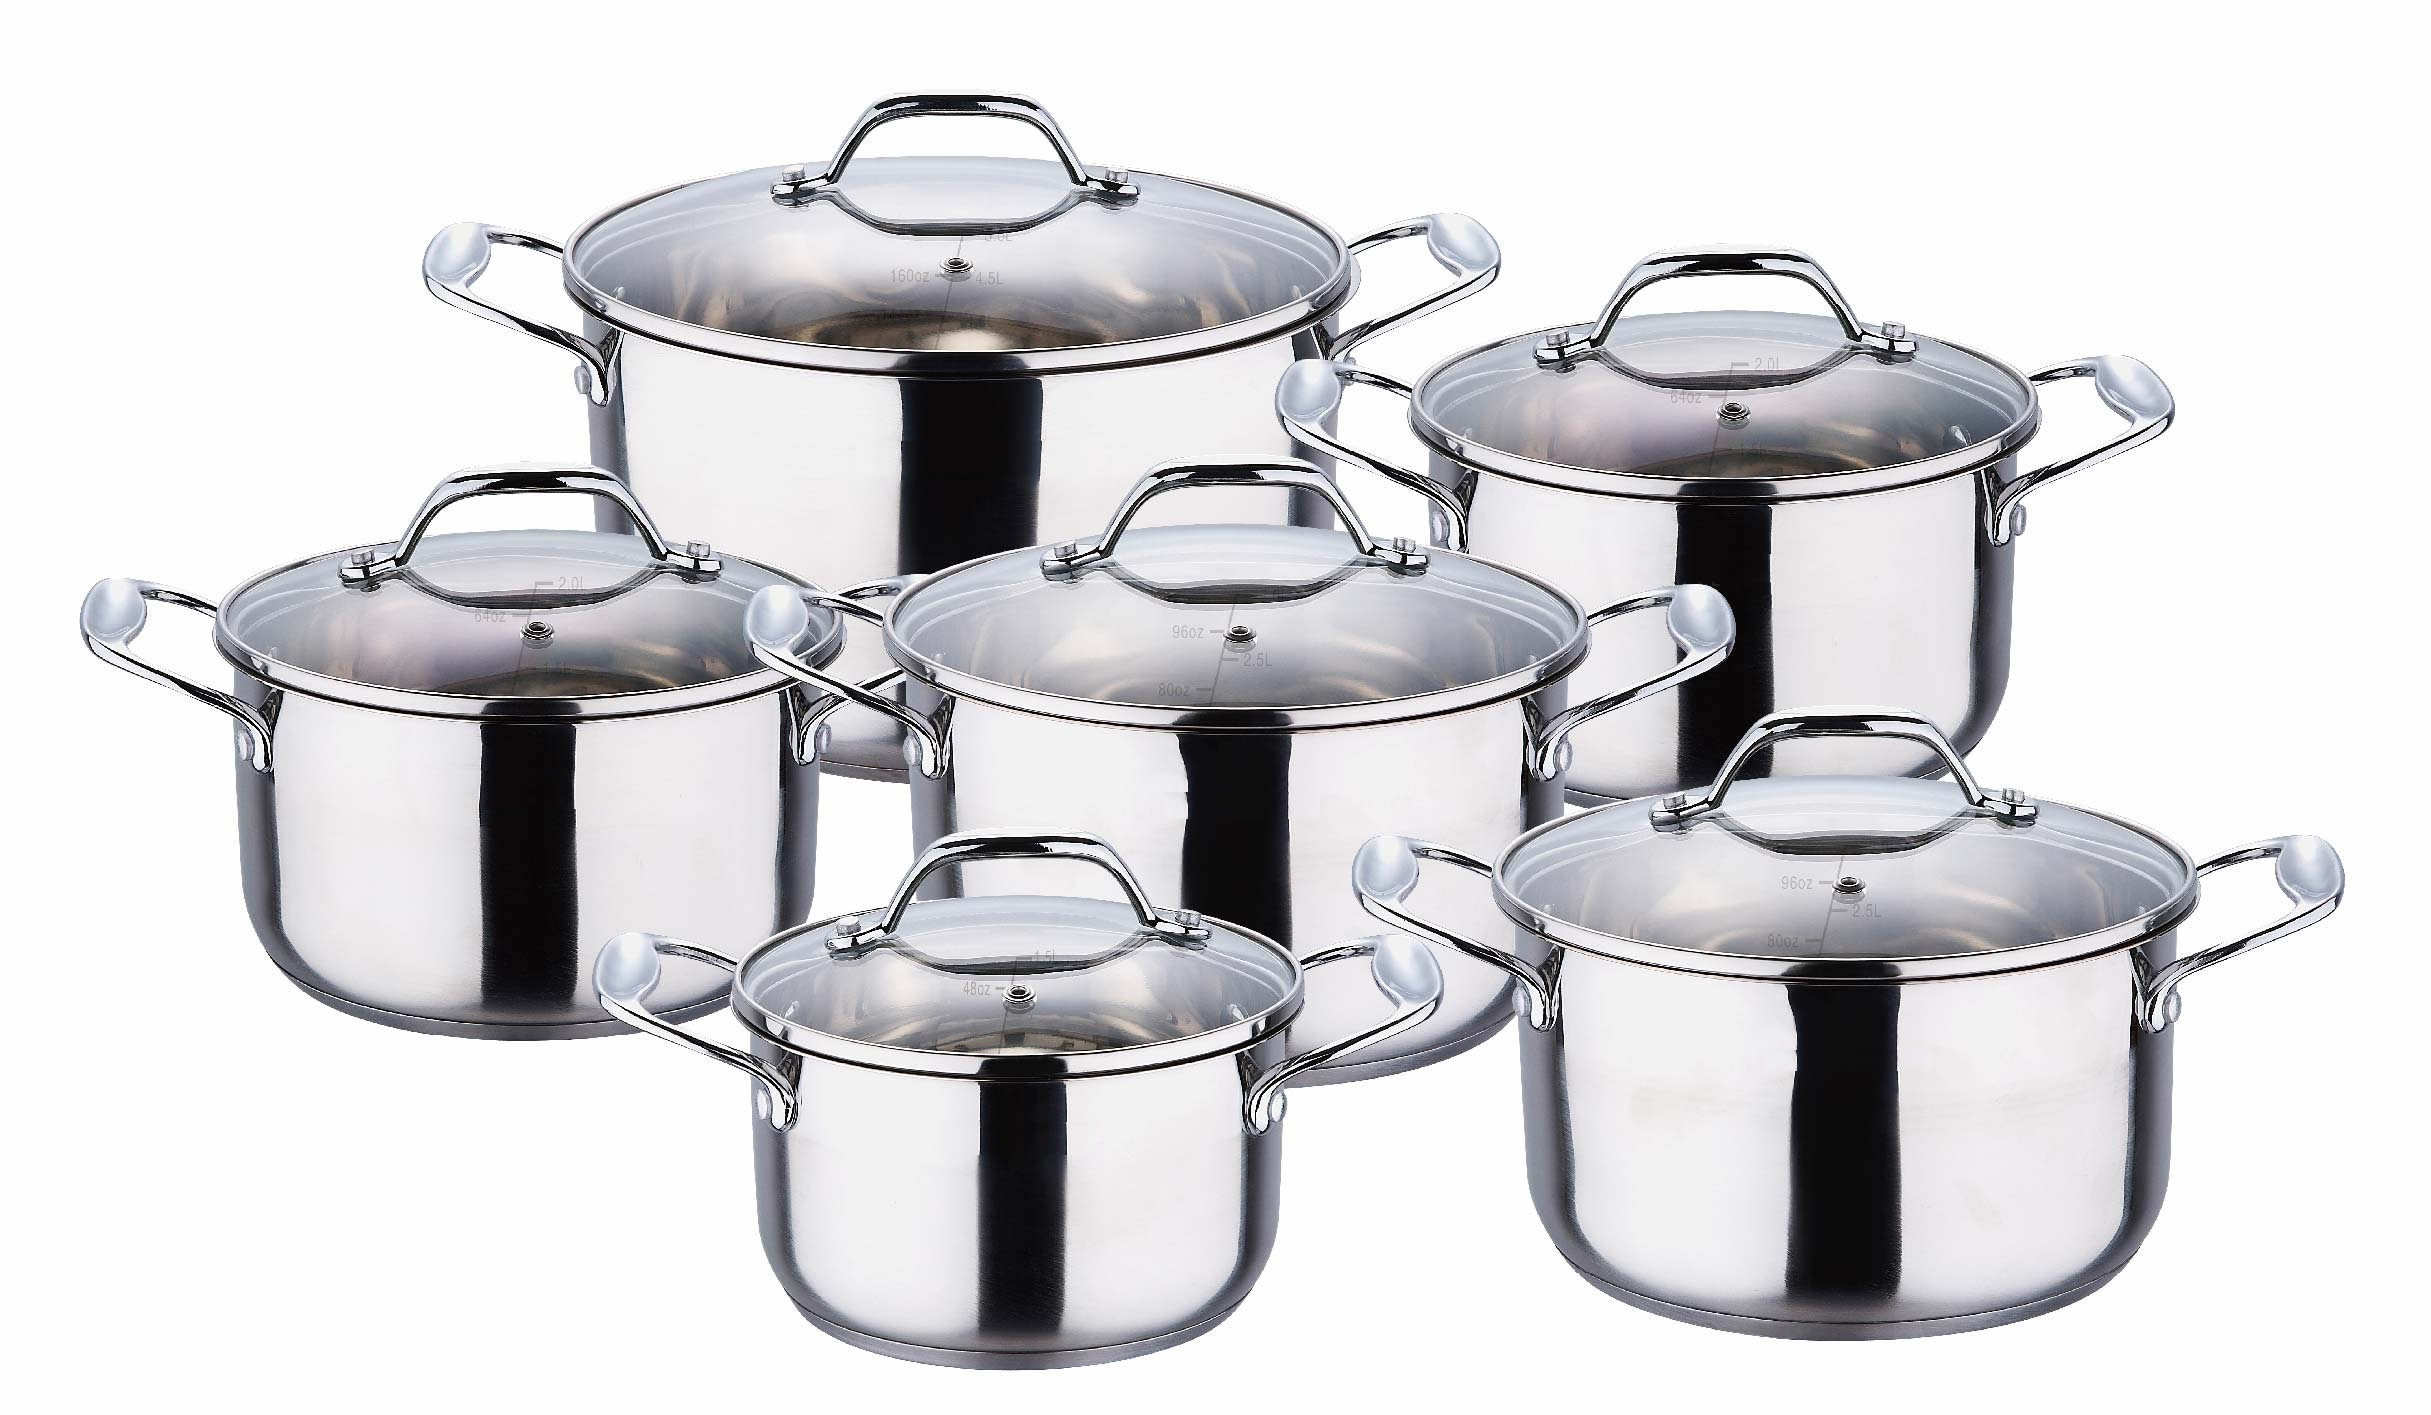 s/s cookware 20